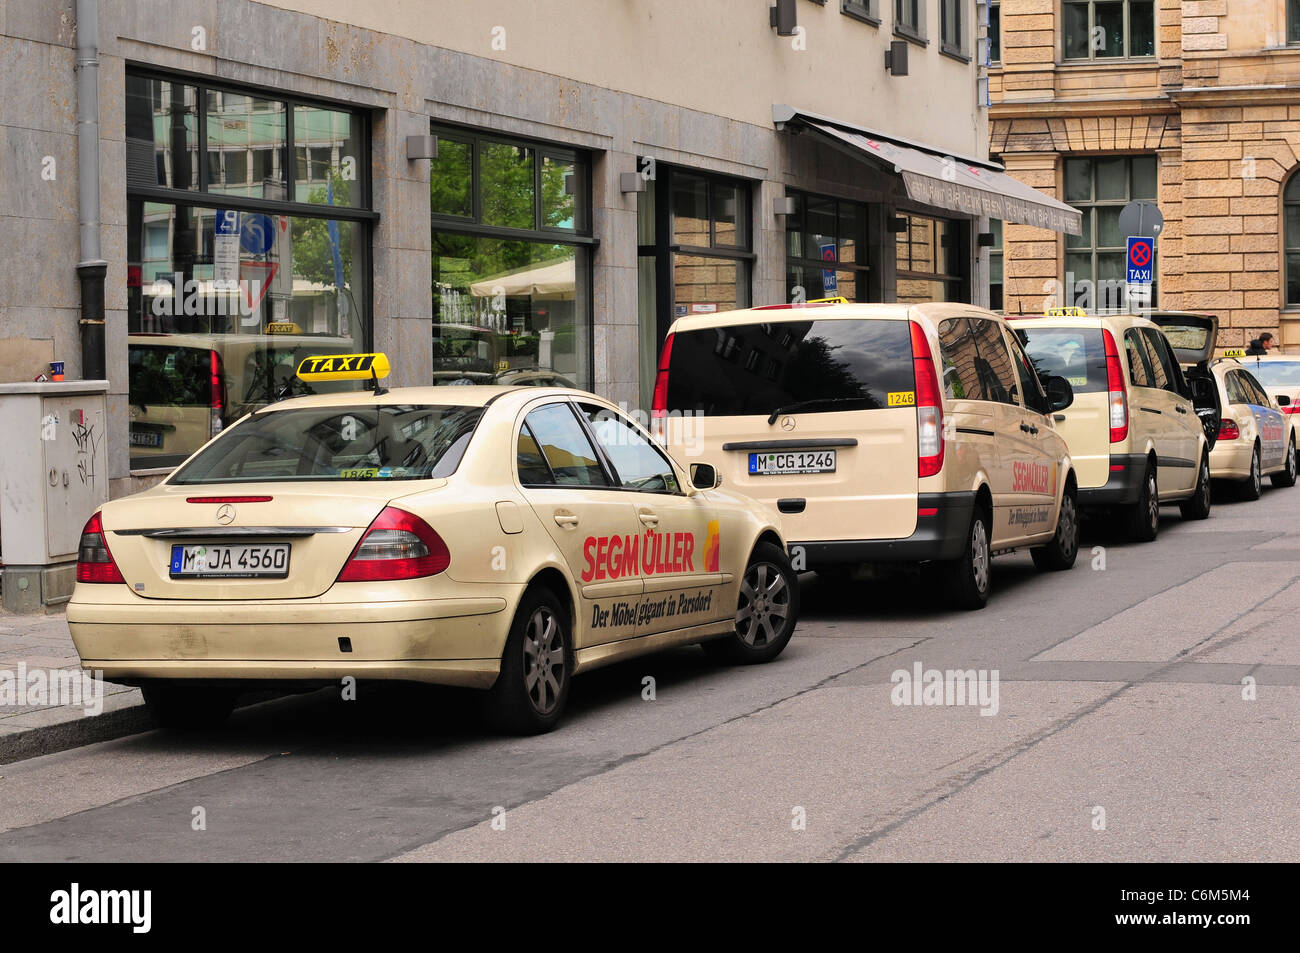 taxis taxi mercedes stock photos taxis taxi mercedes stock images alamy. Black Bedroom Furniture Sets. Home Design Ideas